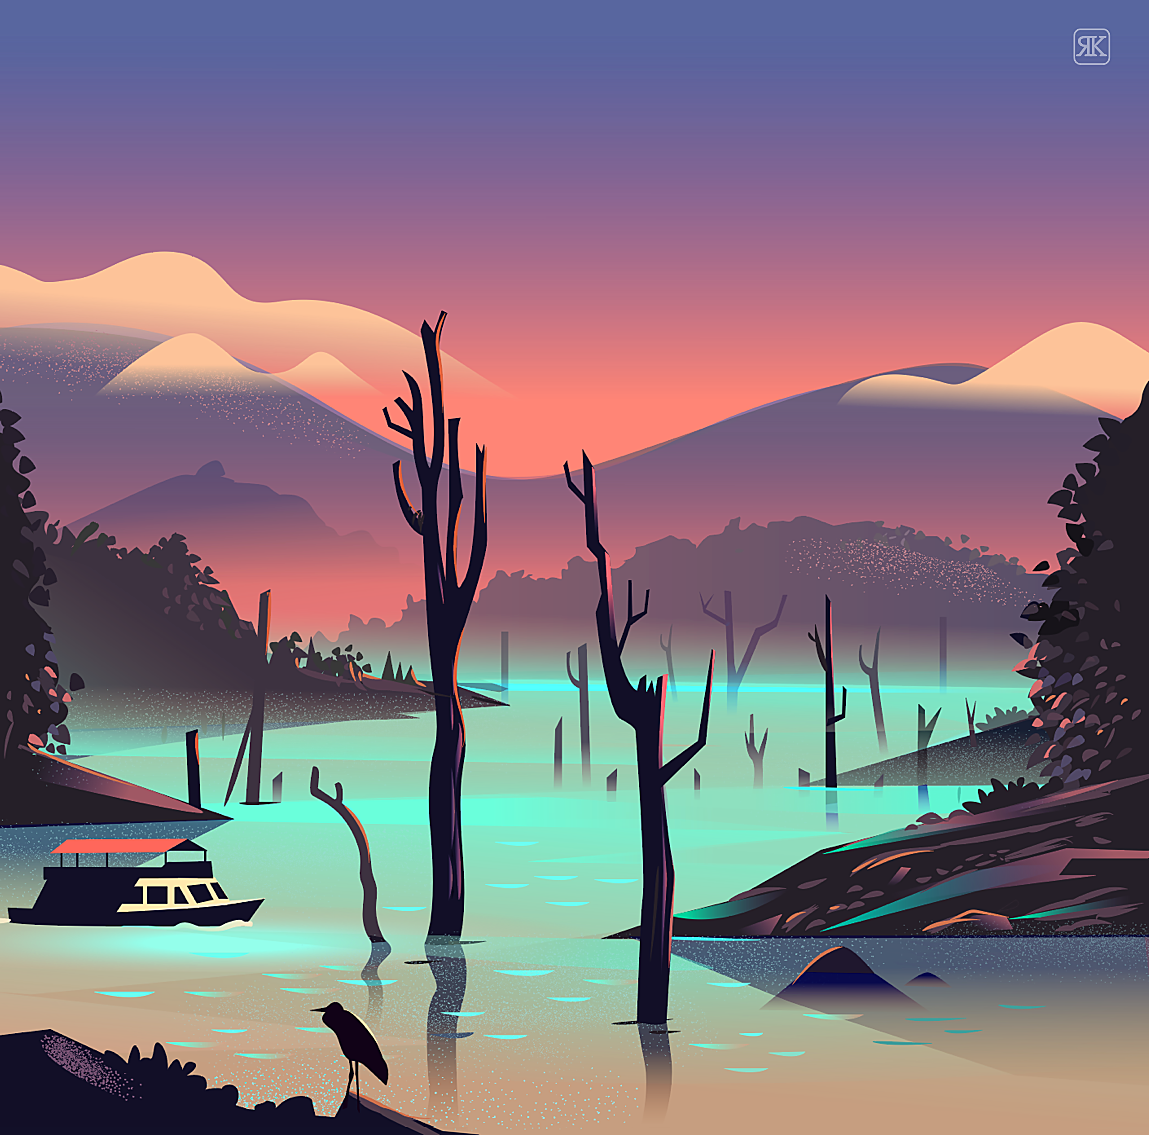 Illustration Series: The Road Trip by Ranganath Krishnamani